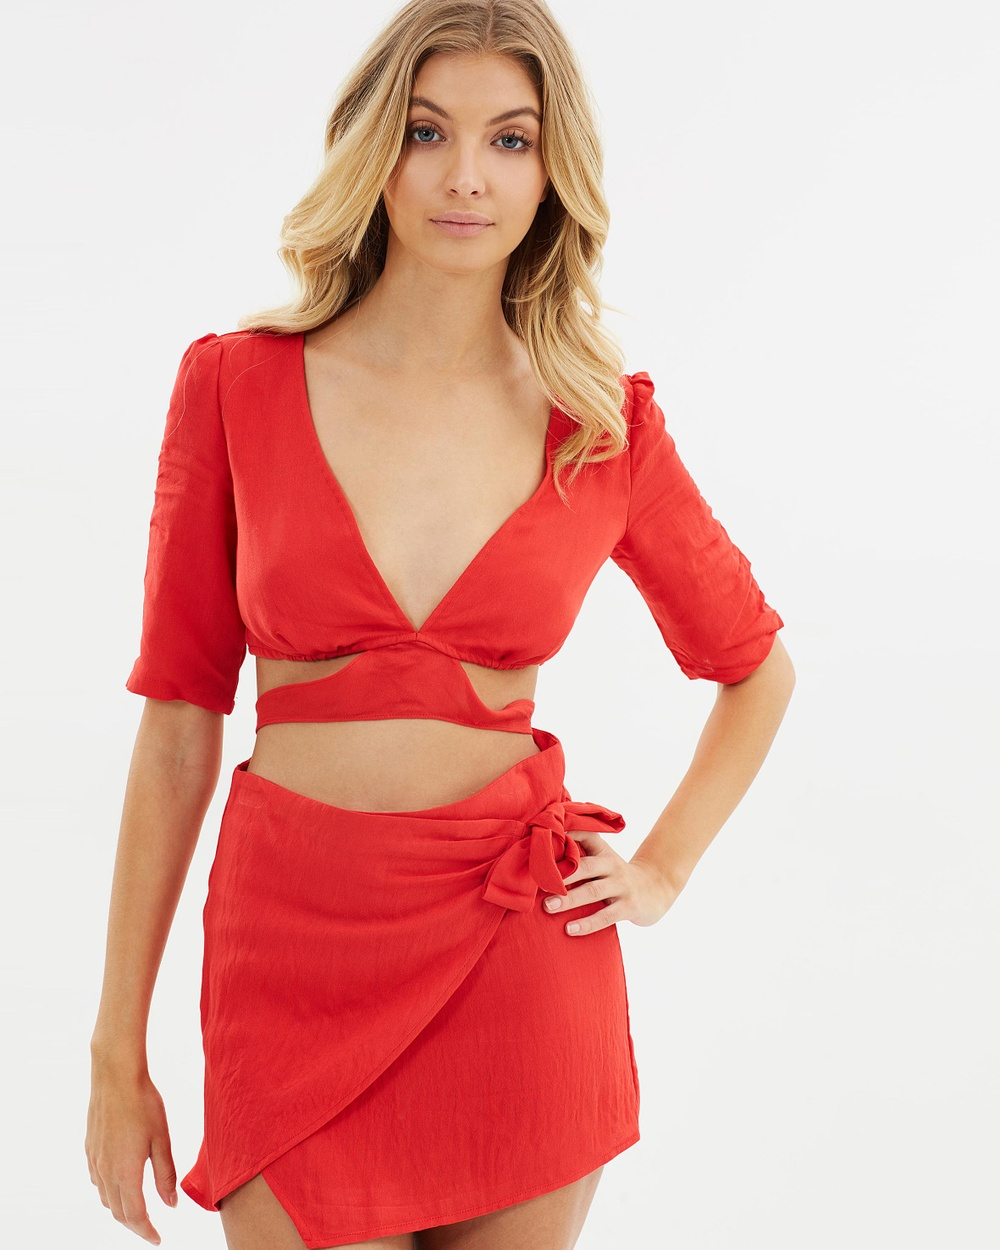 Toby Heart Ginger Rosa Tie Back Top Cropped tops Red Rosa Tie Back Top